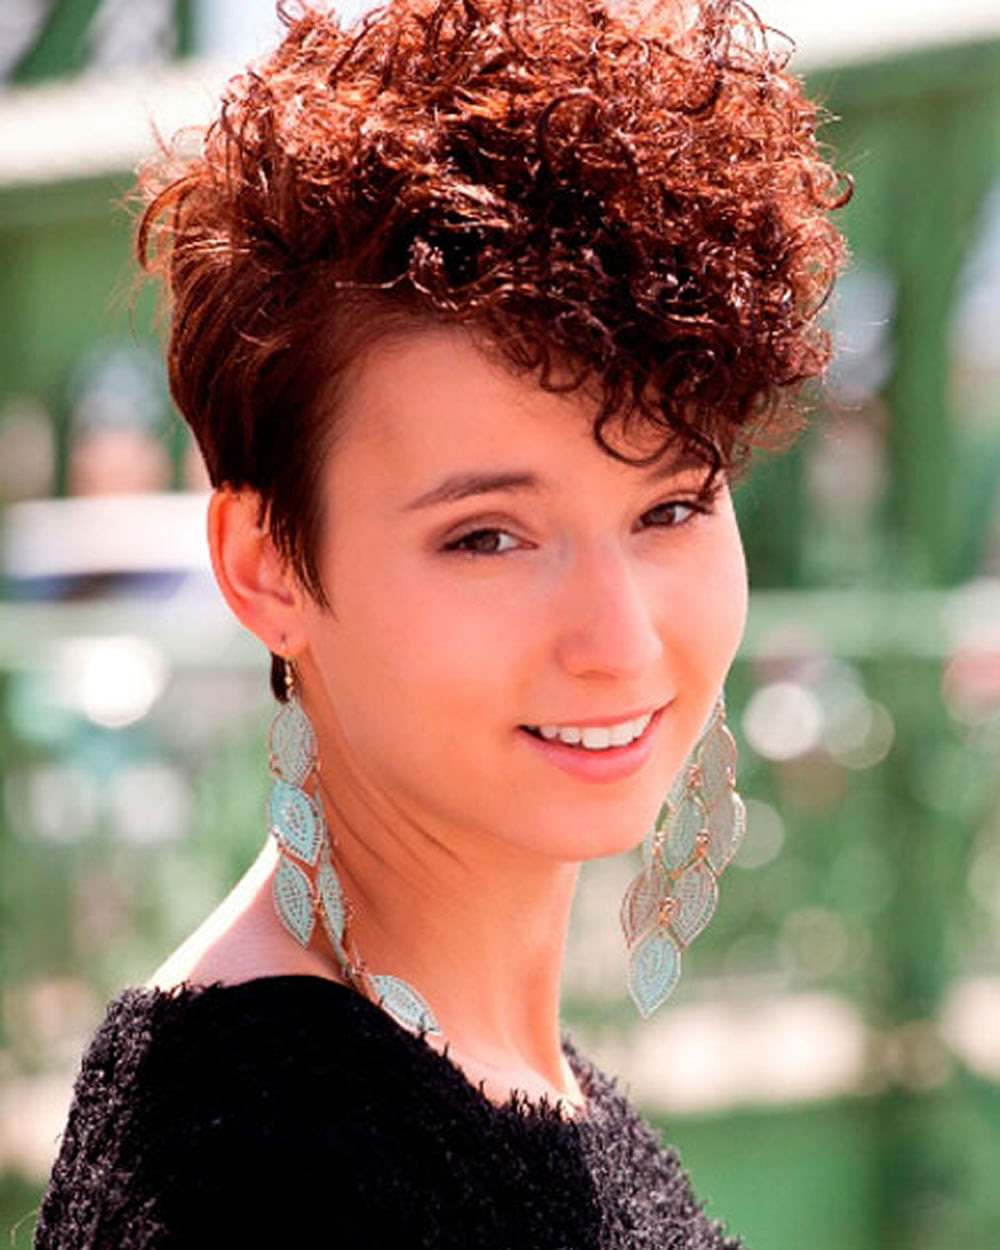 2018 Permed Hairstyles for Short Hair - Best 32 Curly Short Haircut - Page 5 - HAIRSTYLES